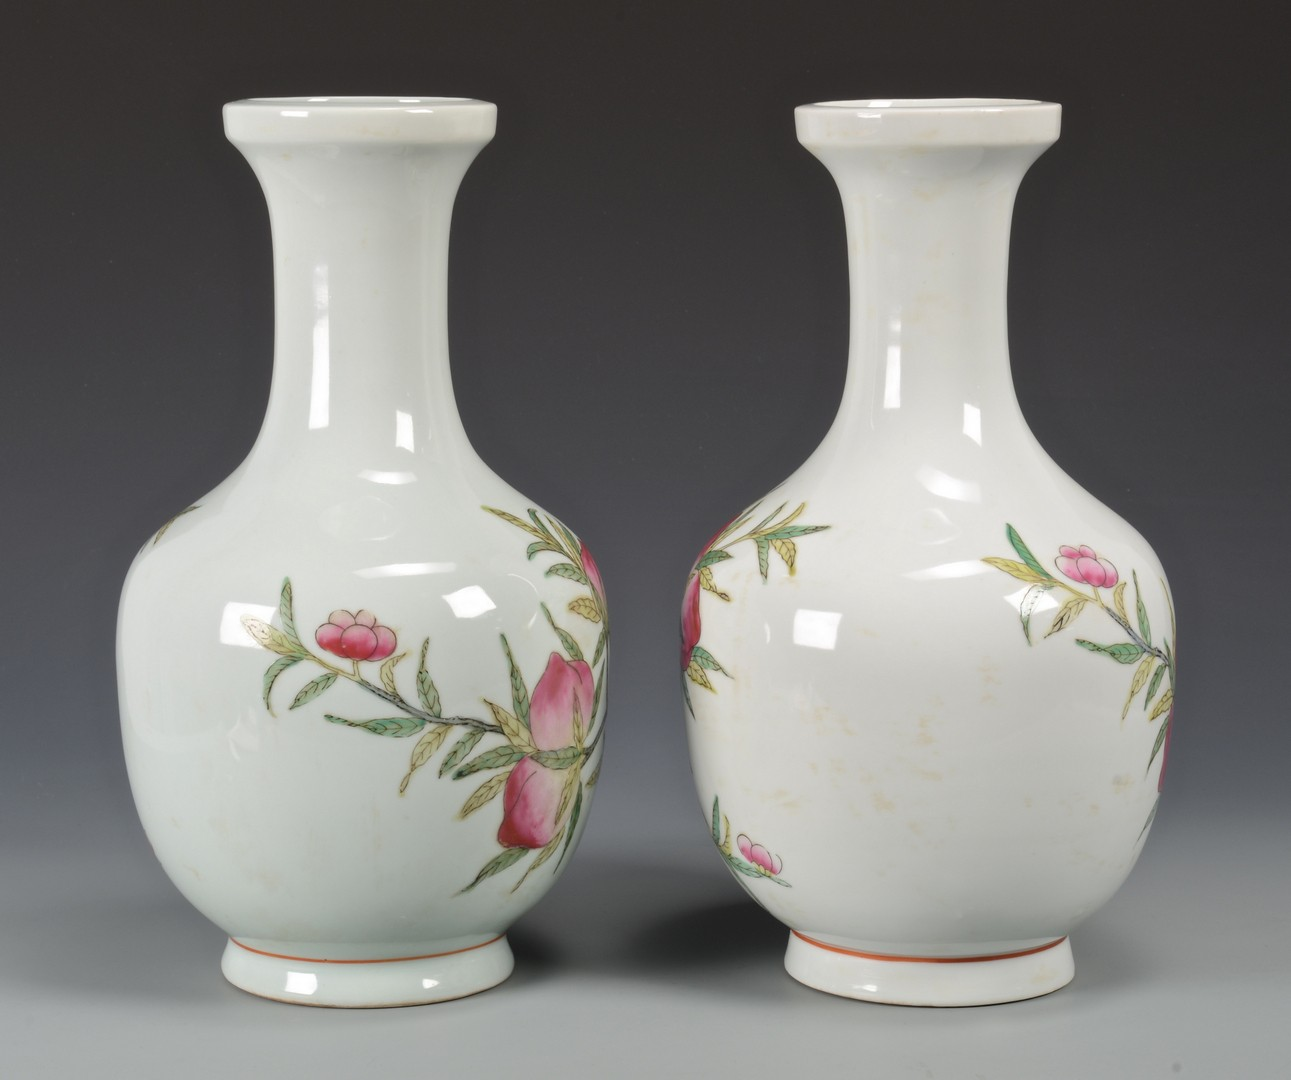 Lot 3832422: 3 Articles of Chinese Porcelain